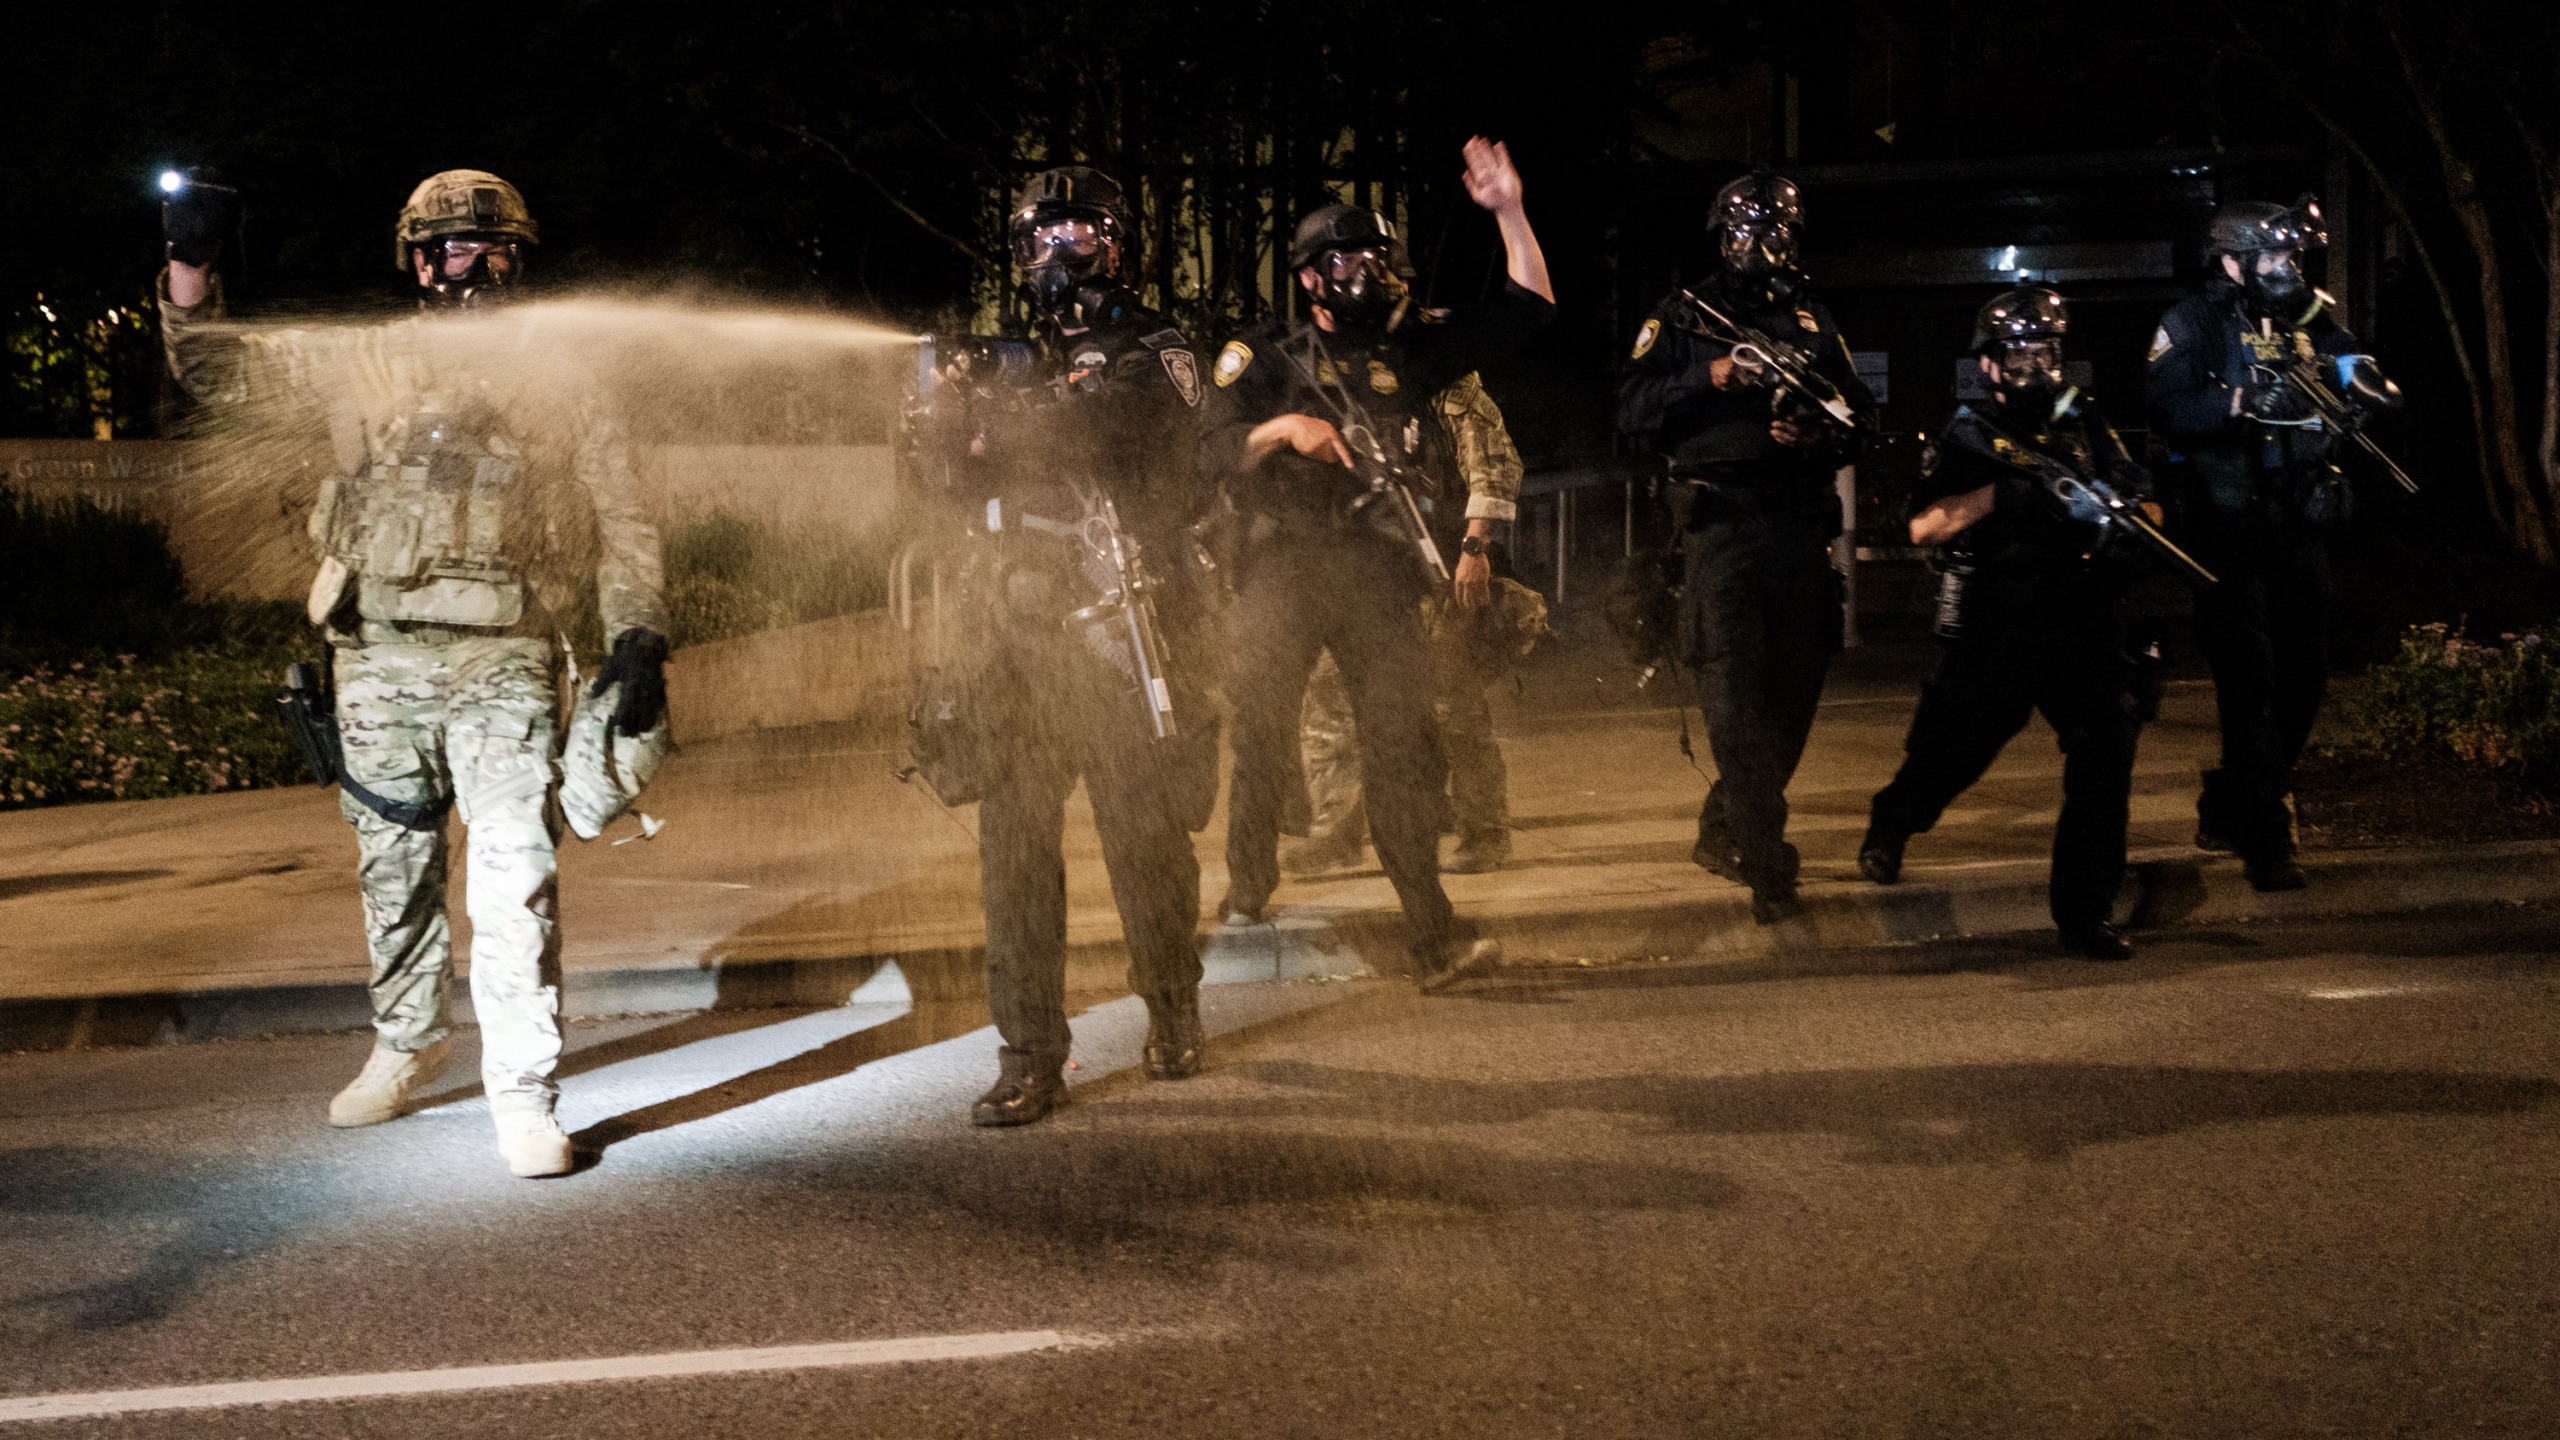 Federal officers use tear gas on protesters outside the Multnomah County Justice Center on July 17, 2020 in Portland, Oregon. (Mason Trinca/Getty Images)